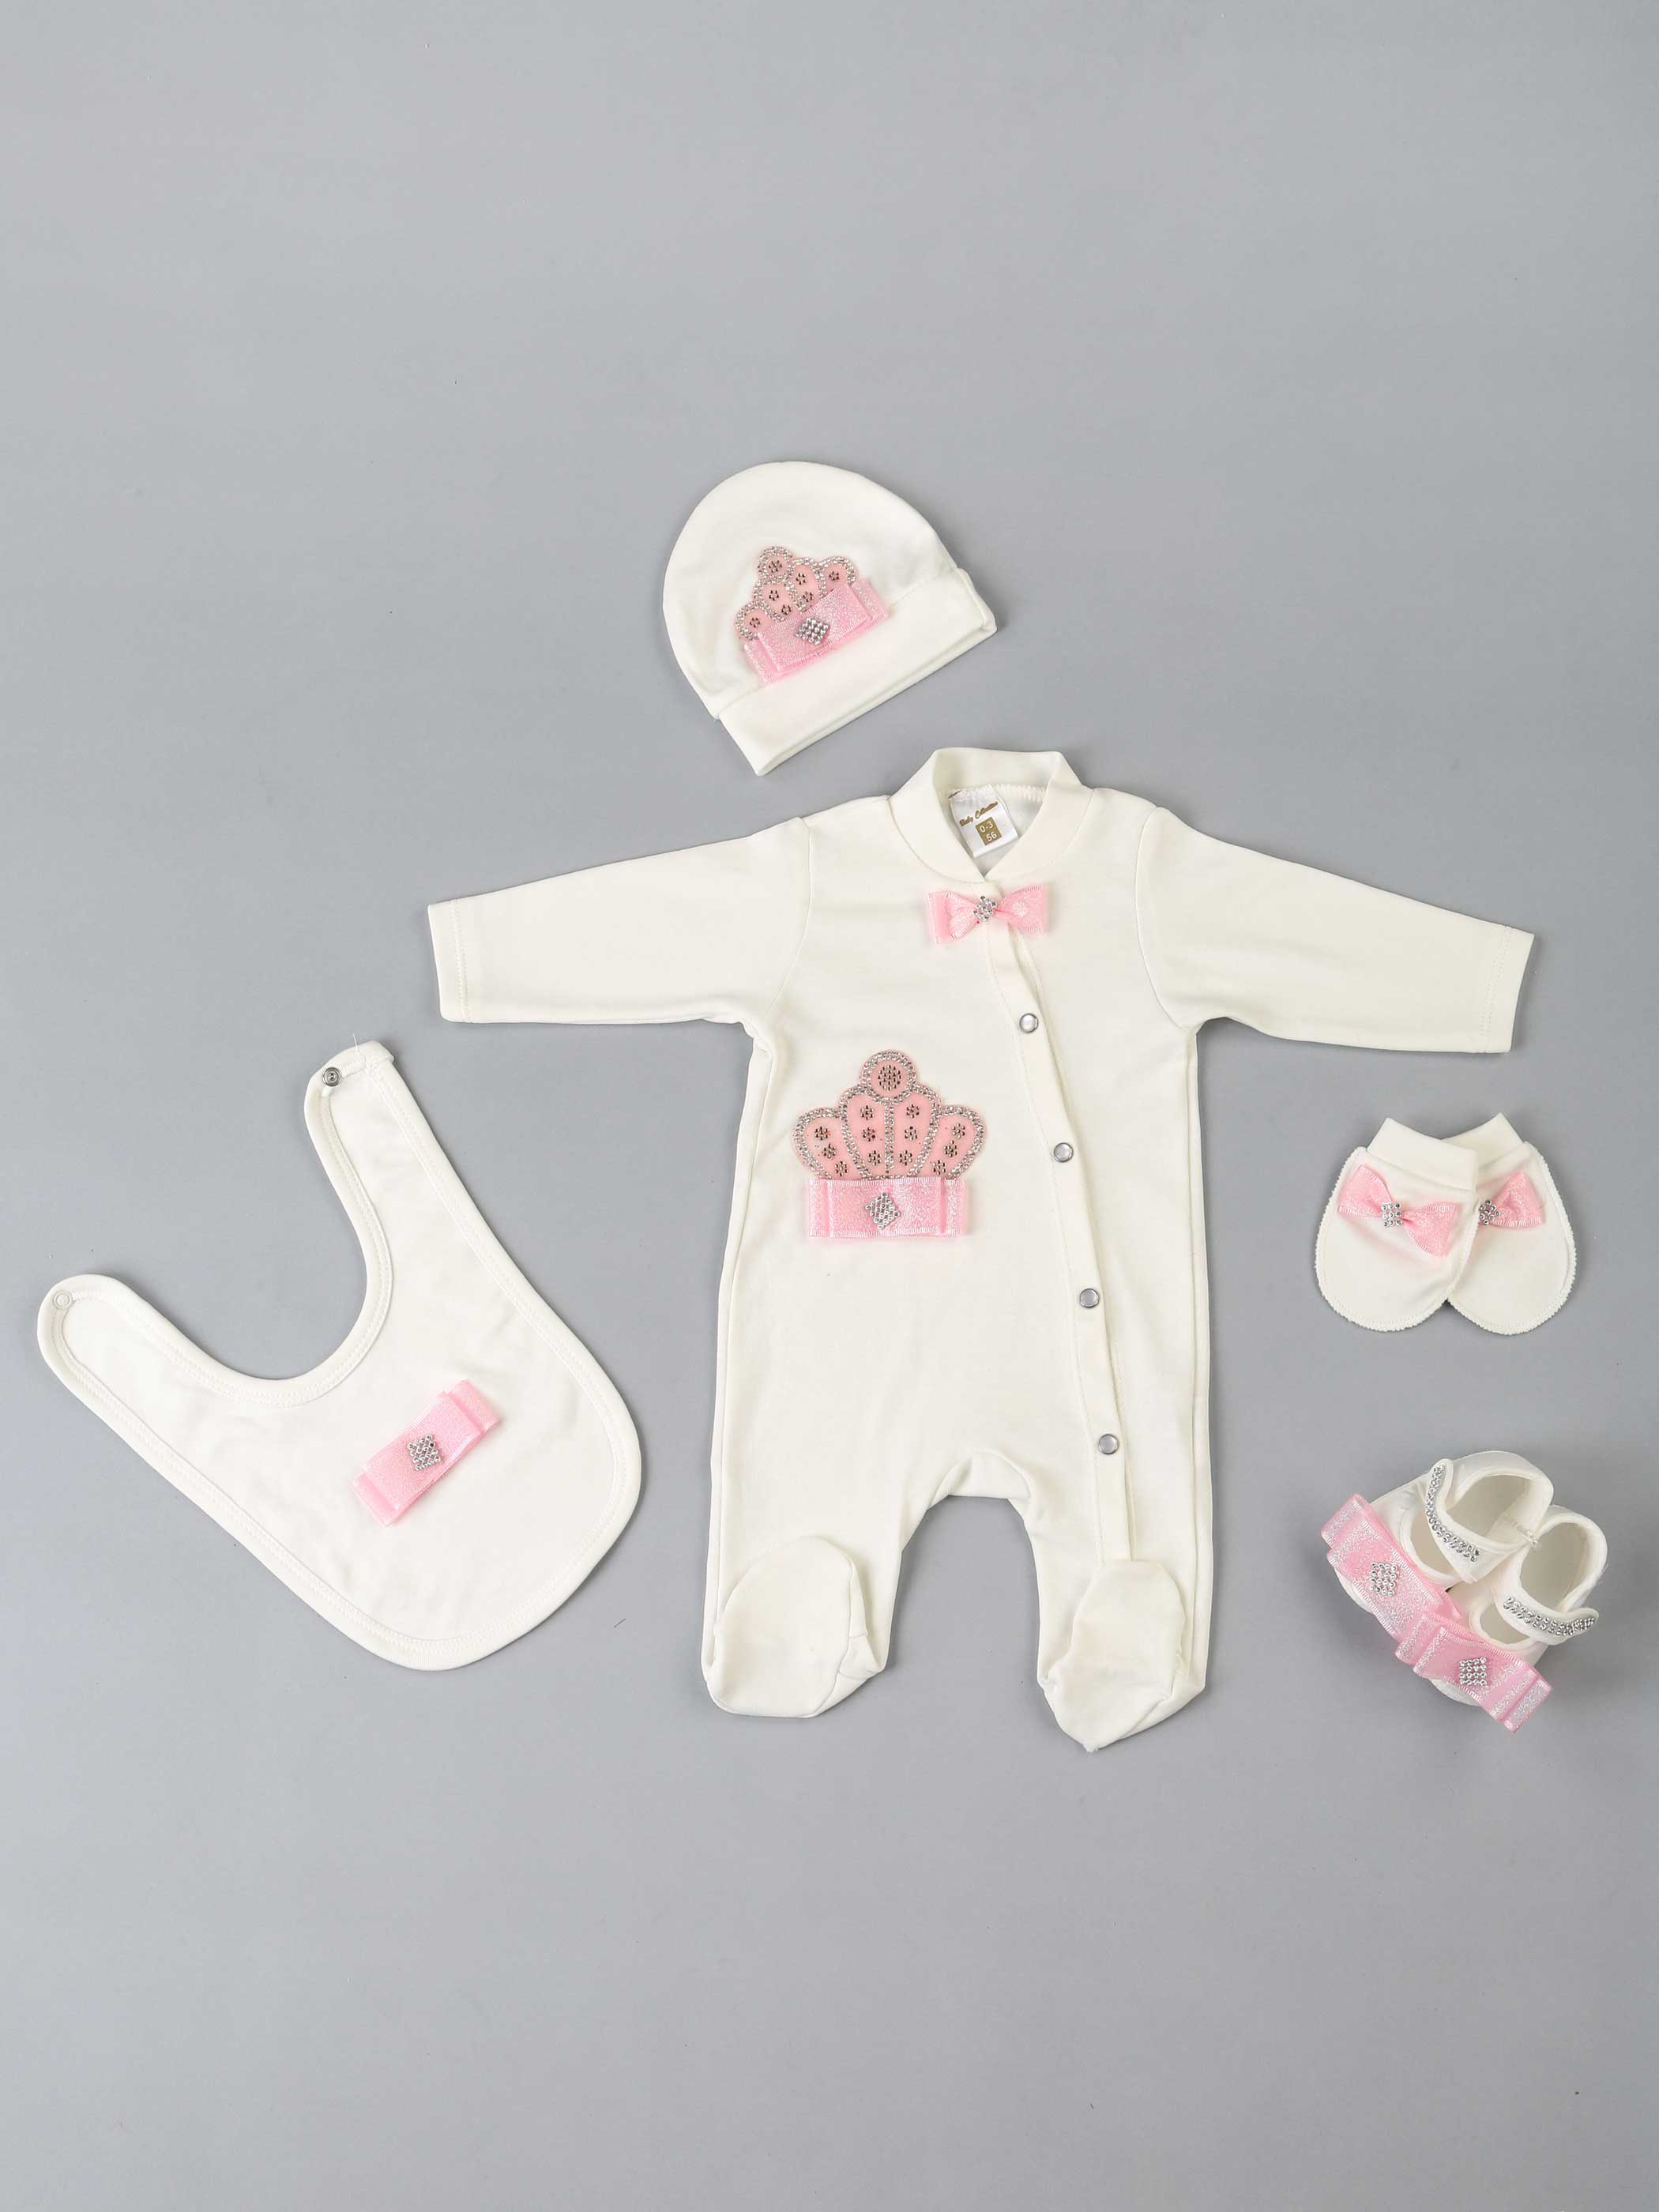 Baby Rompers Girls Boys Newborn Clothes 5 Pcs Set Hat Shoes Gloves Bib Clothing Cotton Clothing Types For Newborn Varieties